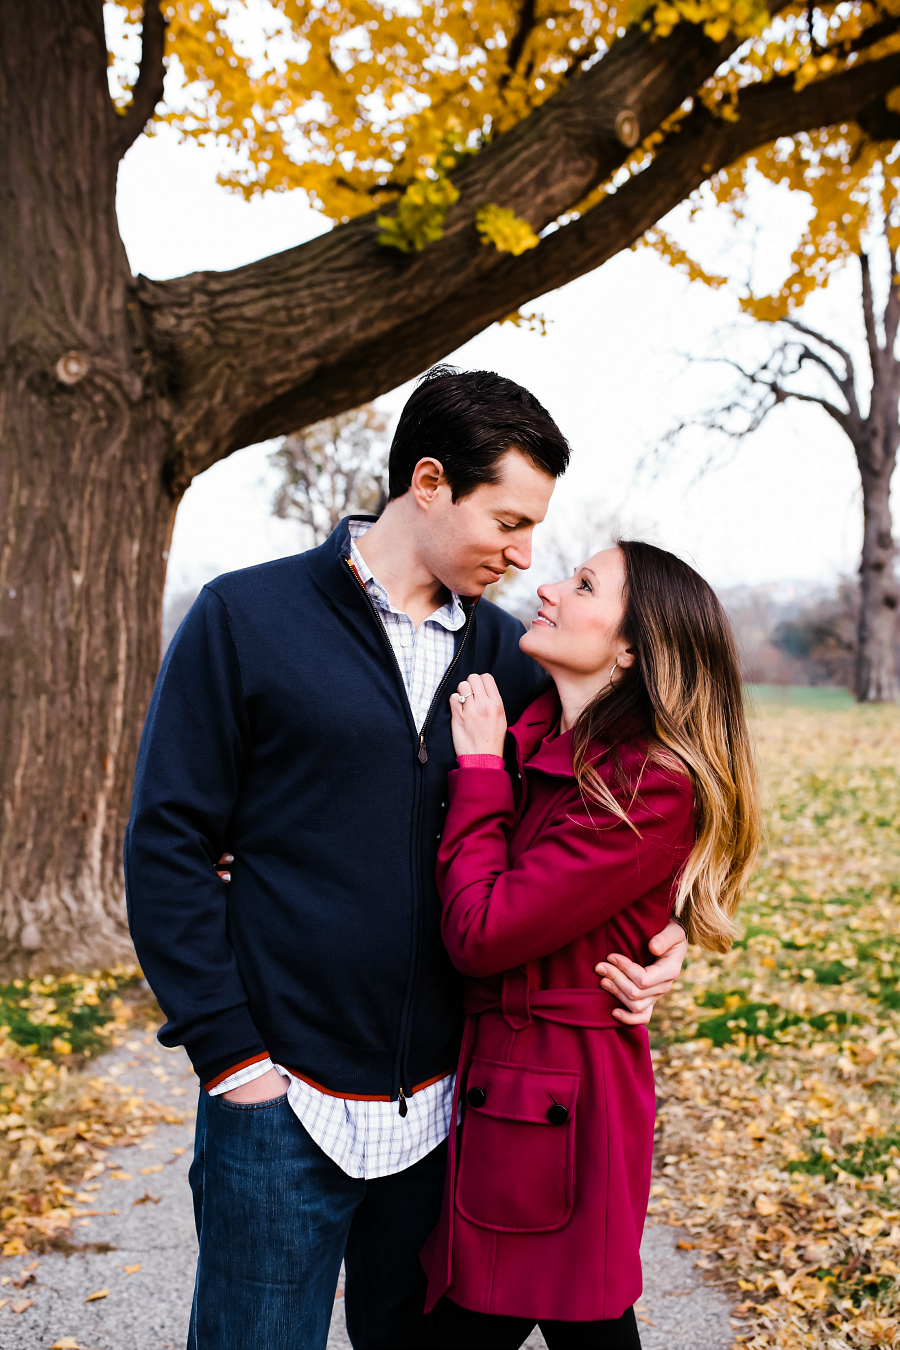 Fall Autumn Park Engagement Sessions in Baltimore Maryland